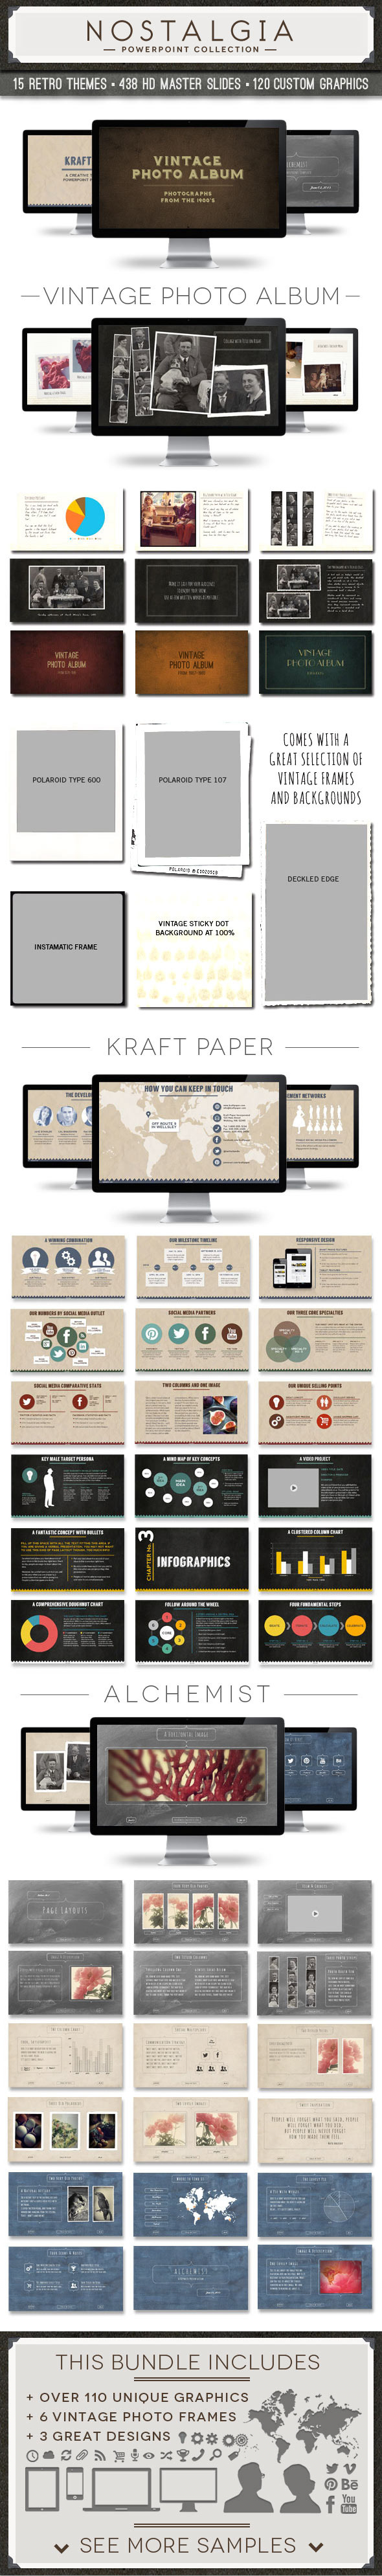 nostalgia collection powerpoint template bundle83munkis, Modern powerpoint